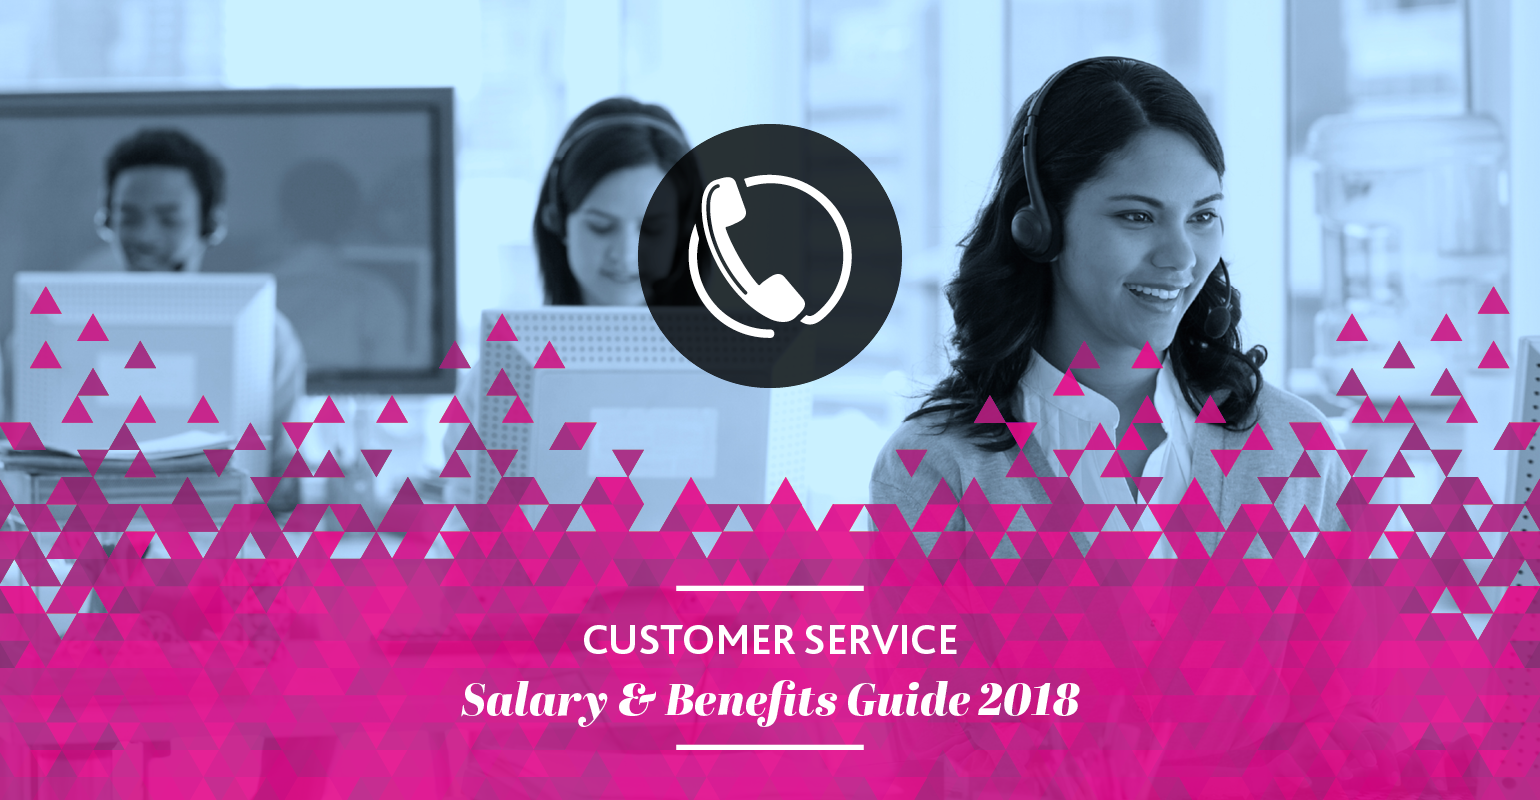 2018 Customer Services Salary & Benefits Guide